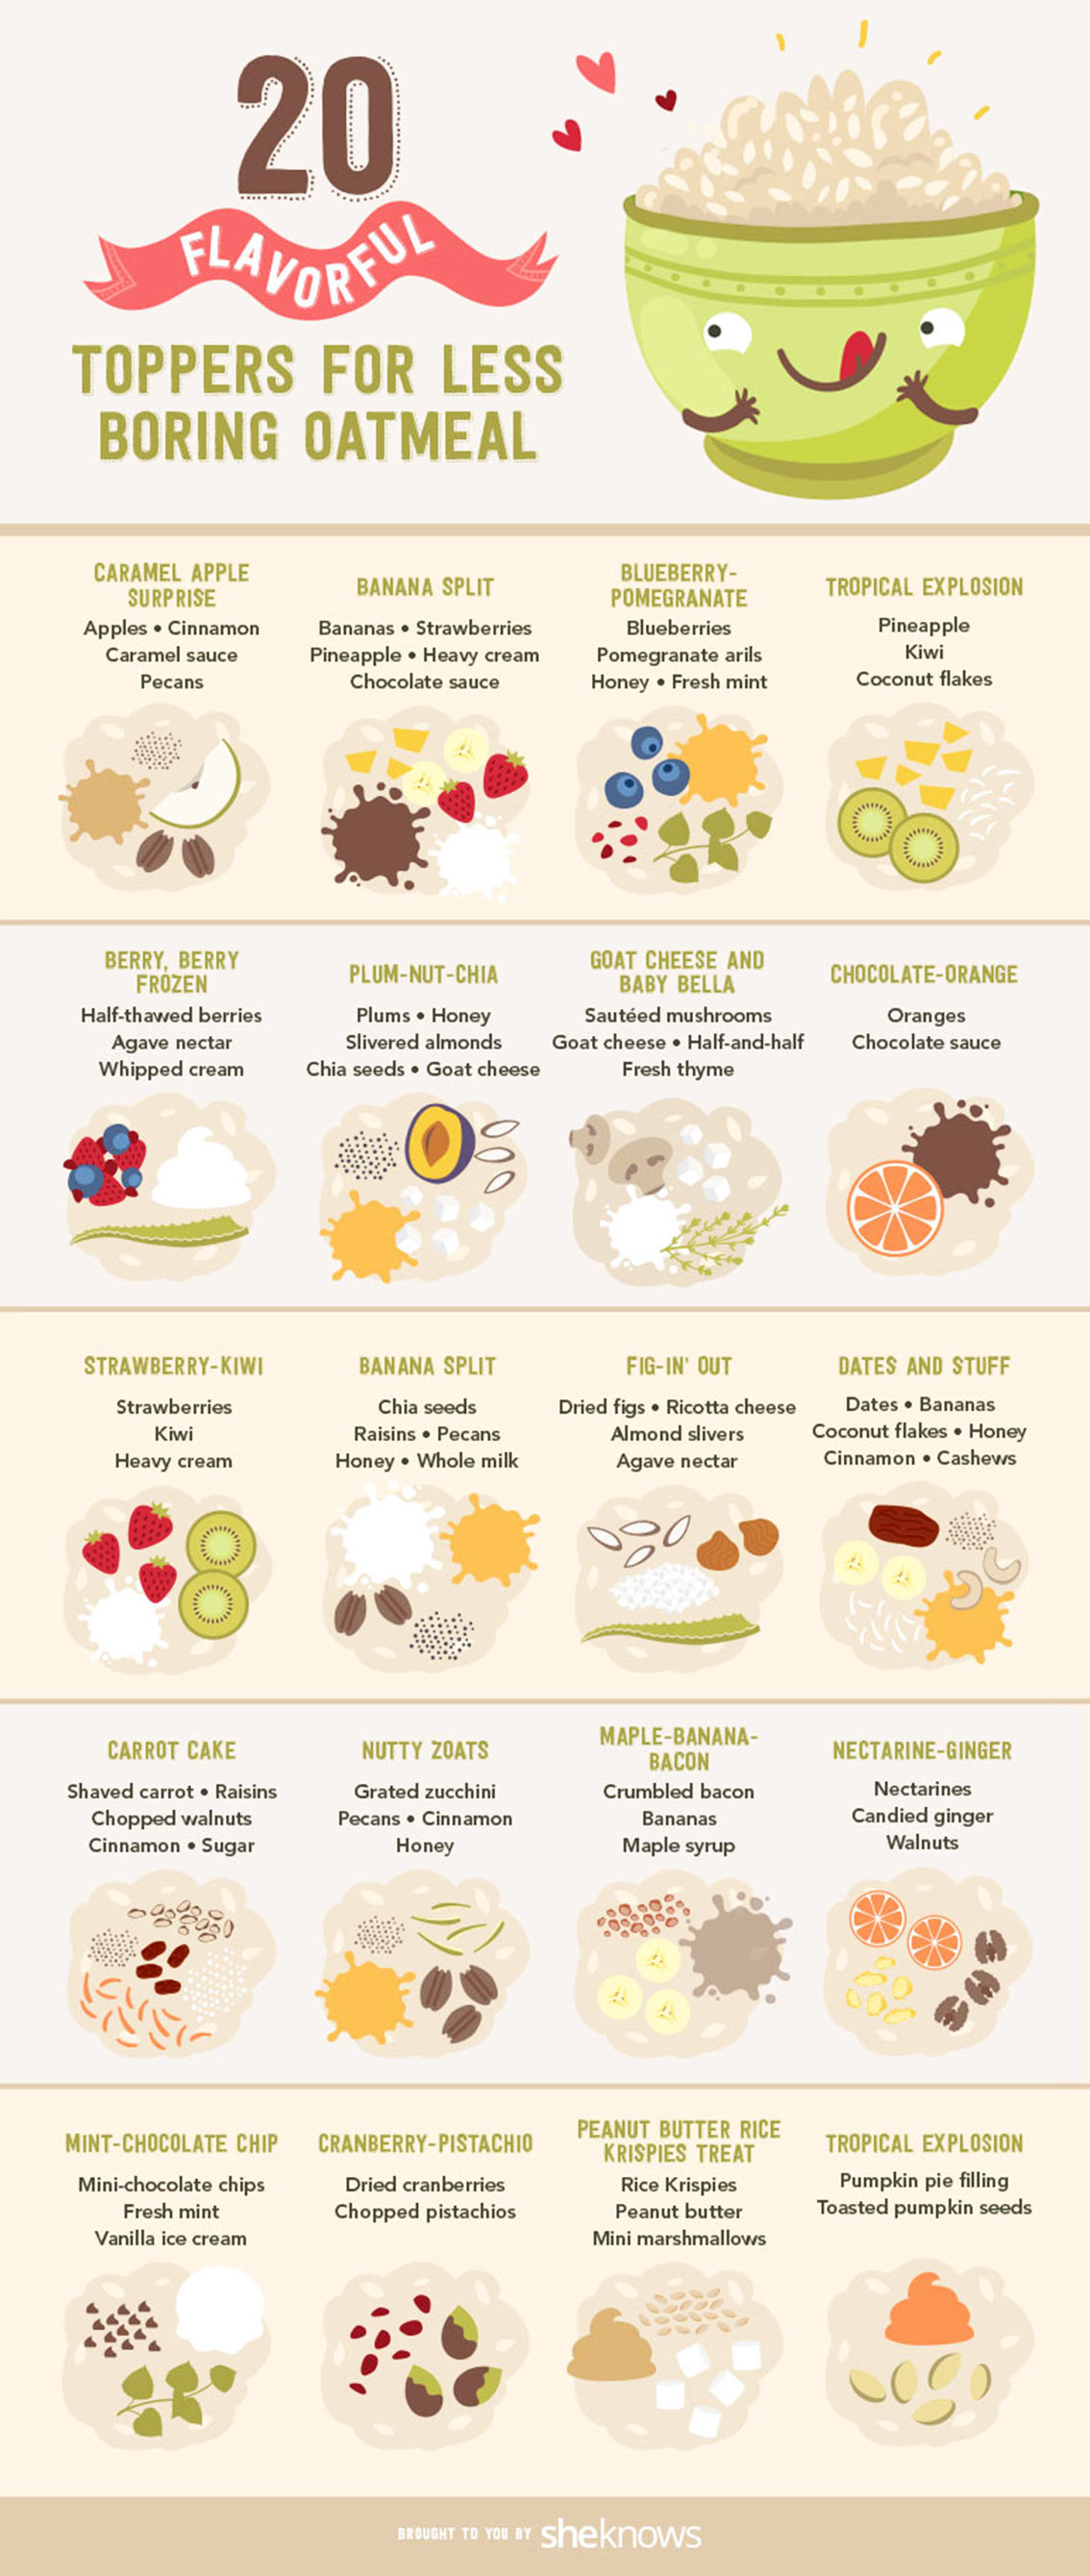 20 Best Toppings for Oatmeal Infographic